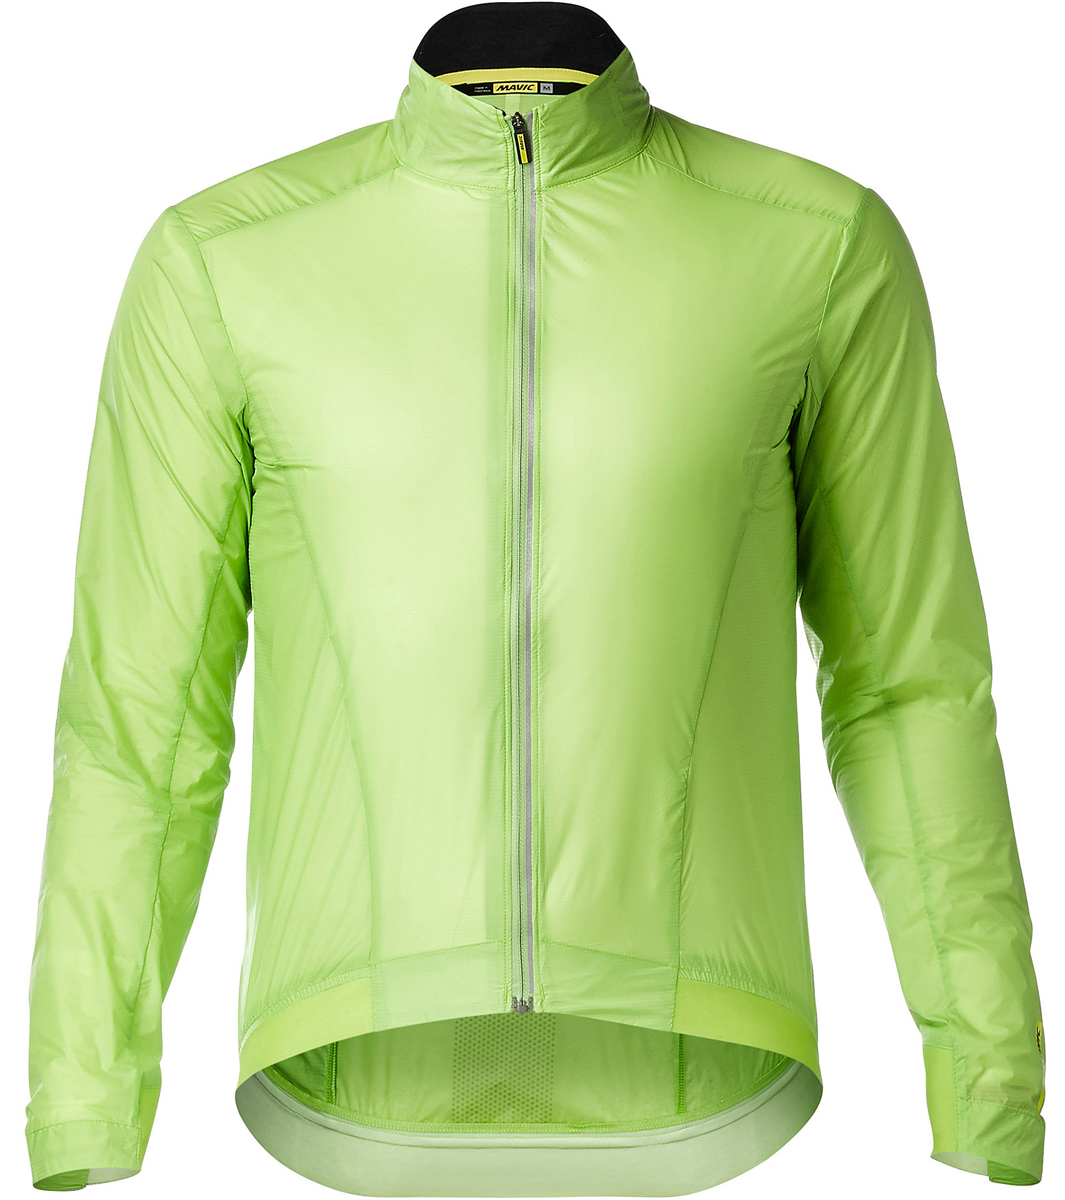 Mavic Essential Wind Jacket - lime green M